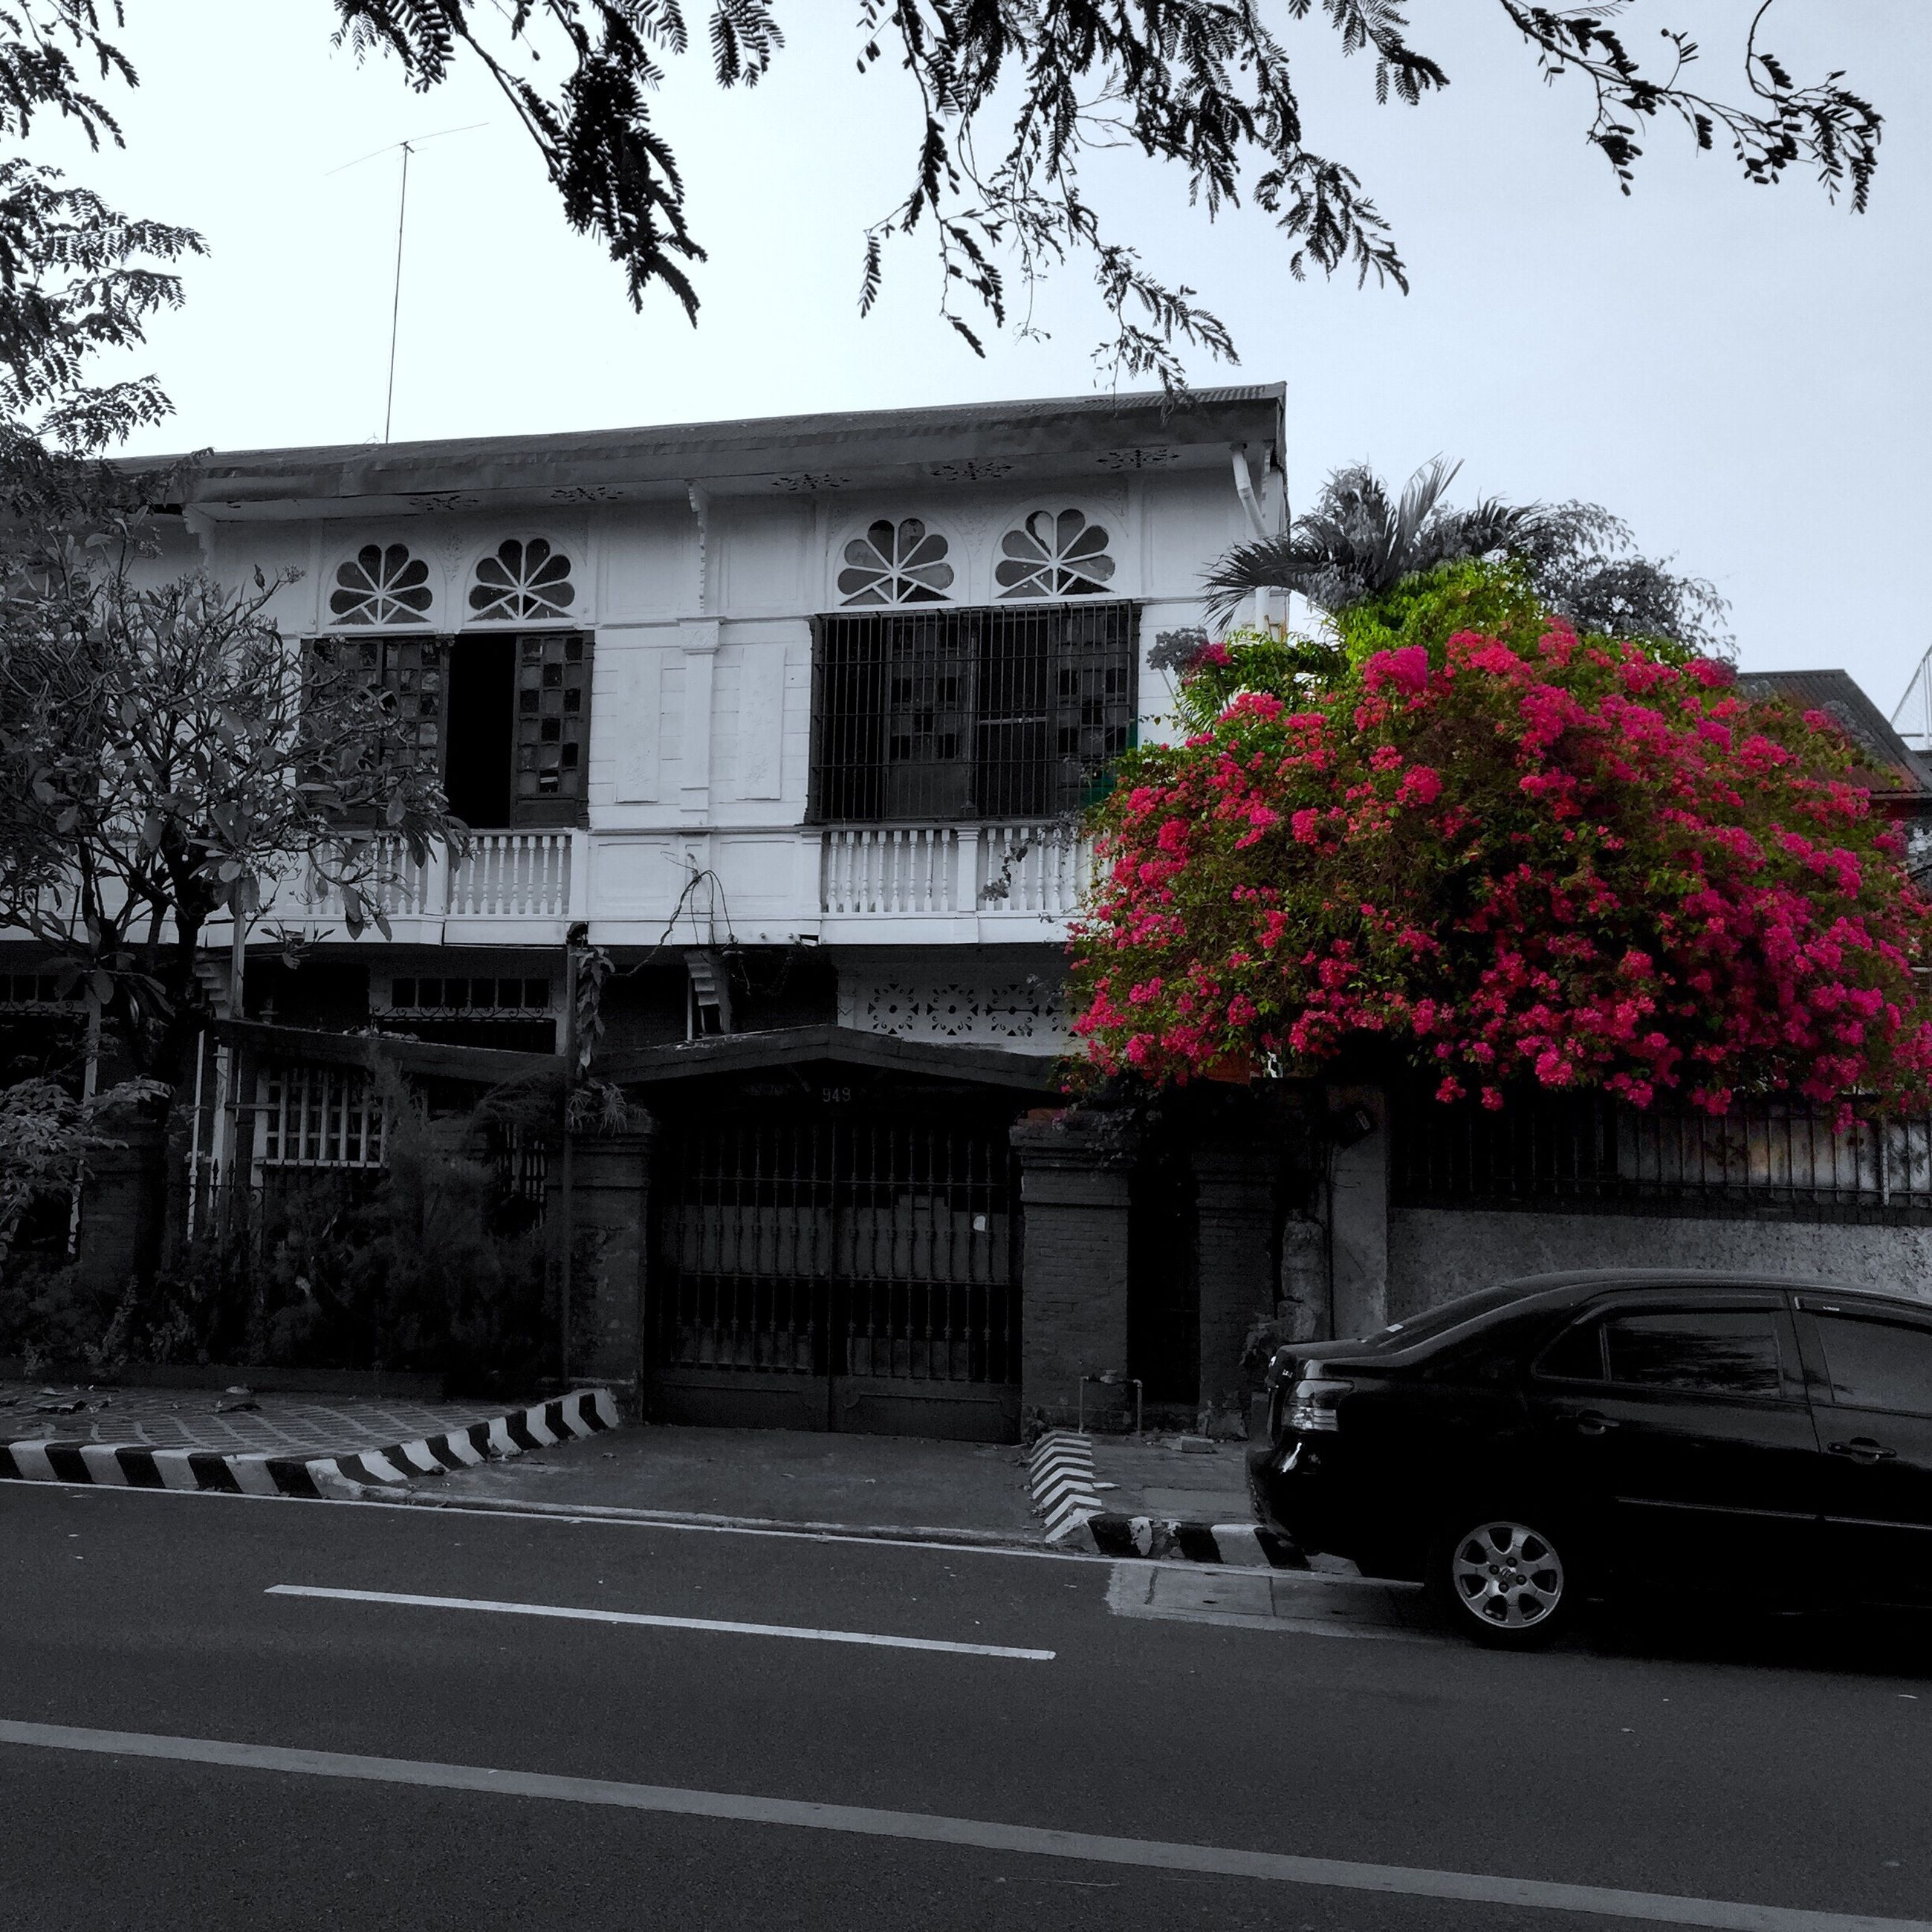 building exterior, architecture, built structure, transportation, clear sky, car, tree, land vehicle, road, street, mode of transport, flower, city, day, text, house, building, outdoors, residential structure, residential building